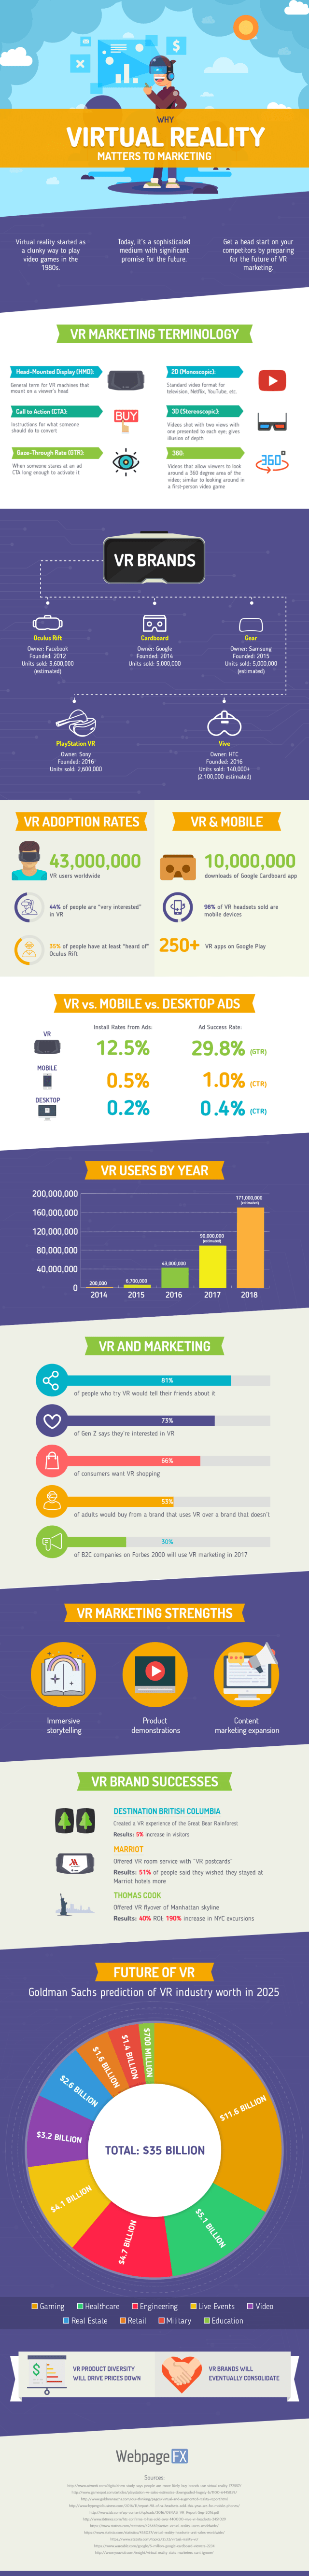 Why Virtual Reality Matters to Marketing